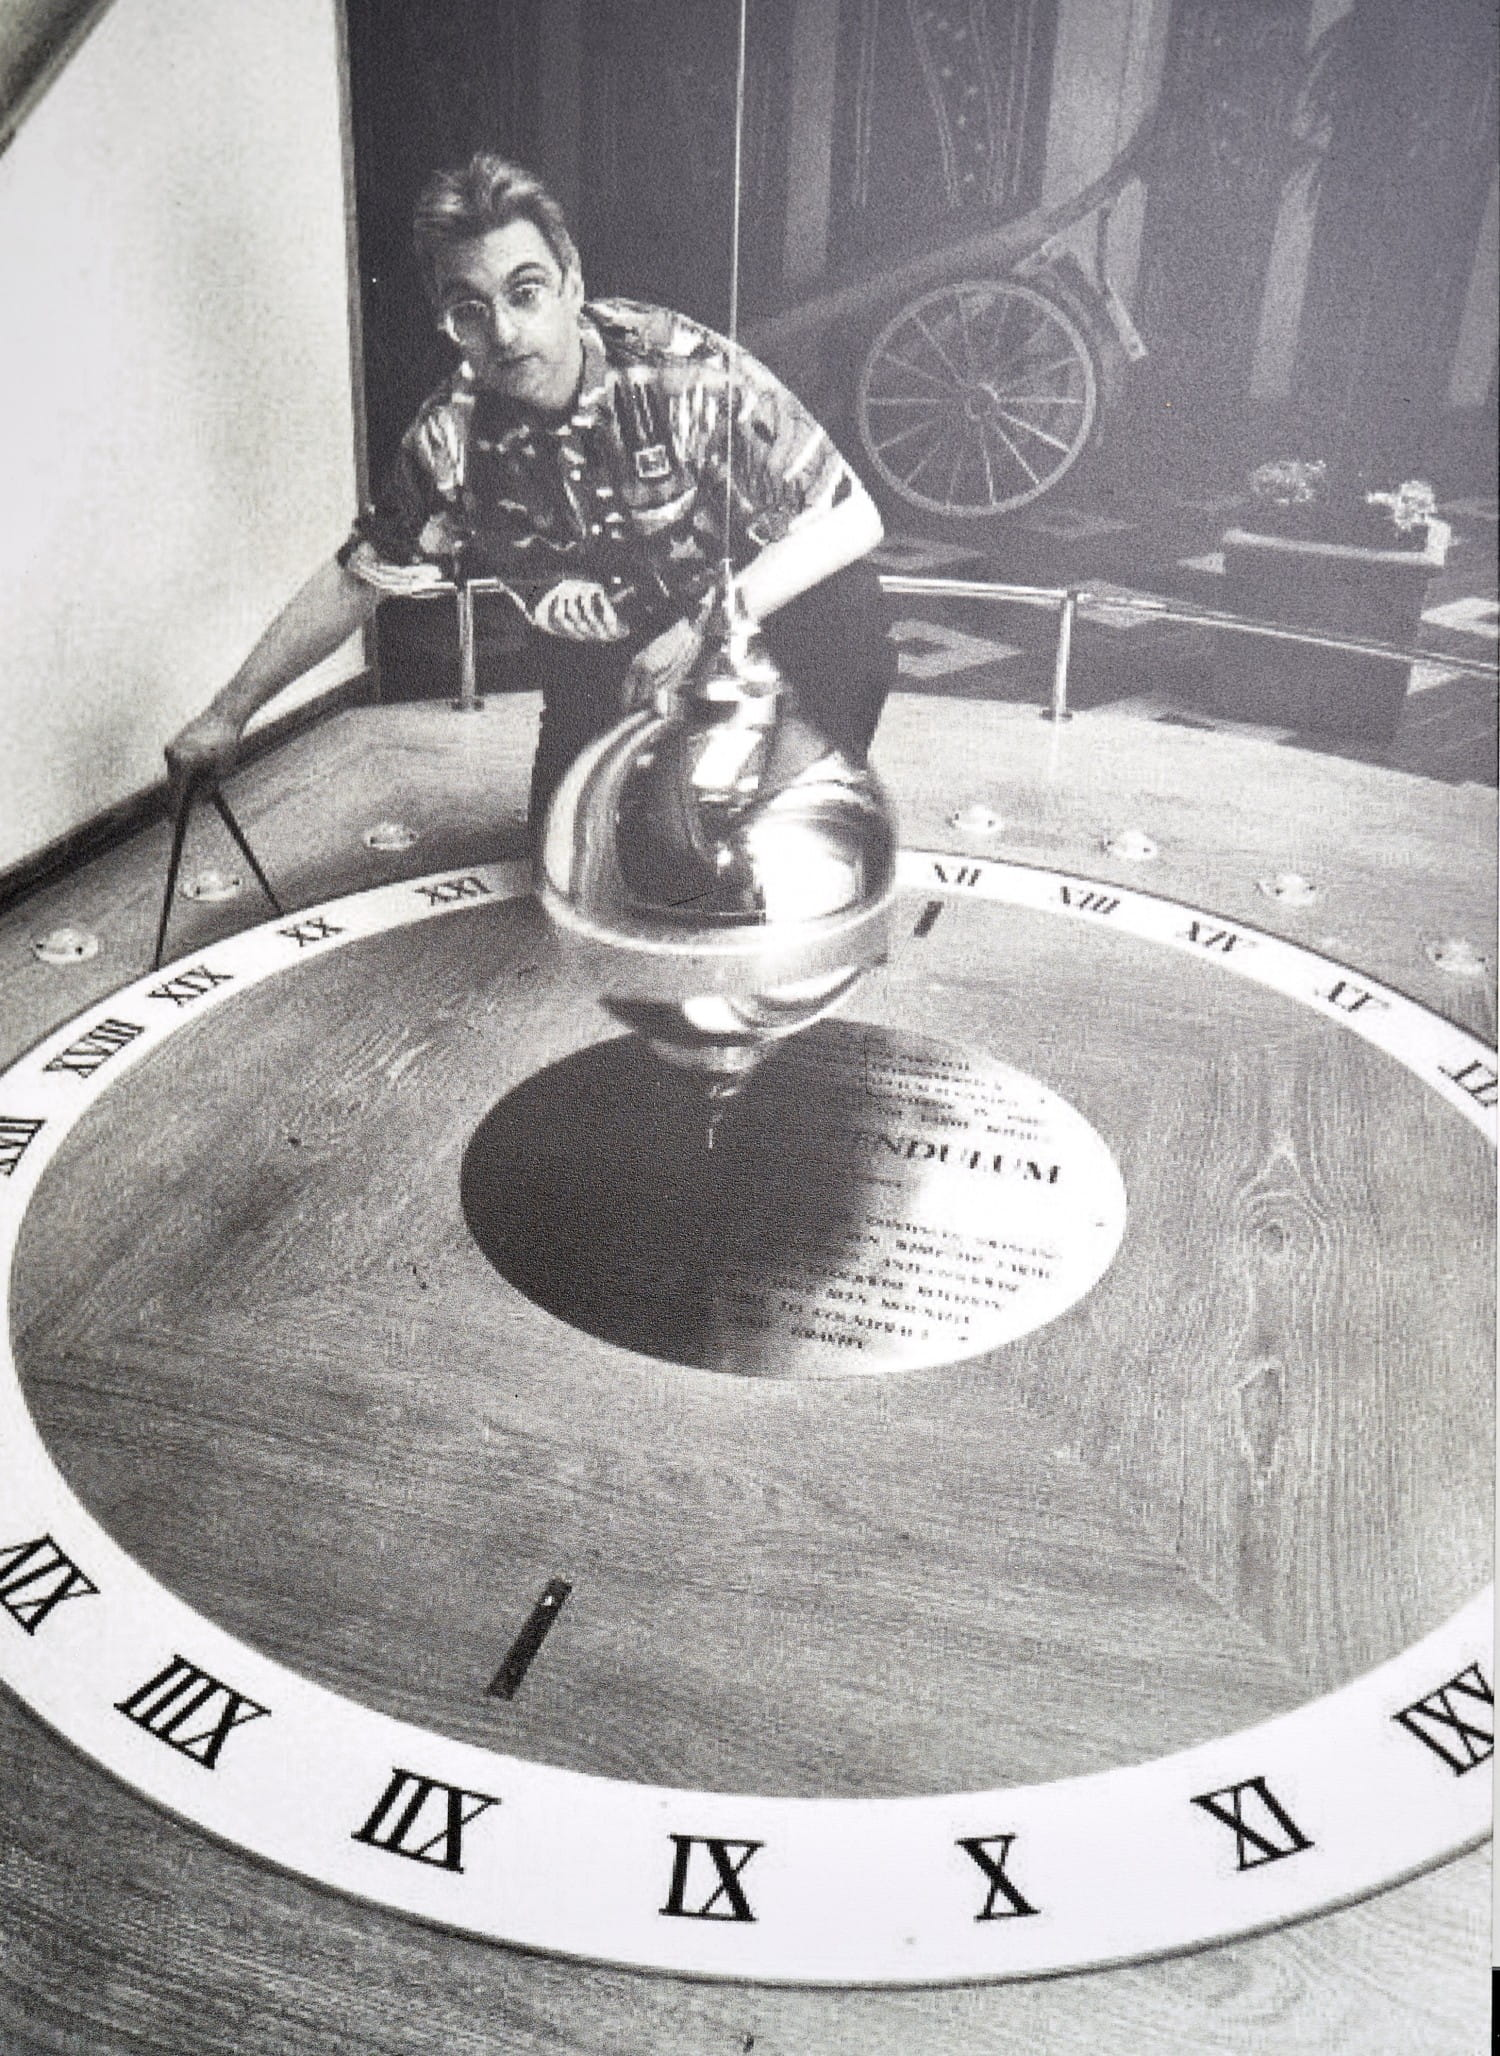 The replica of Foucault's pendulum, conceived as an experiment to demonstrate the earth's rotation. Pic taken in 1988. Herald and Times